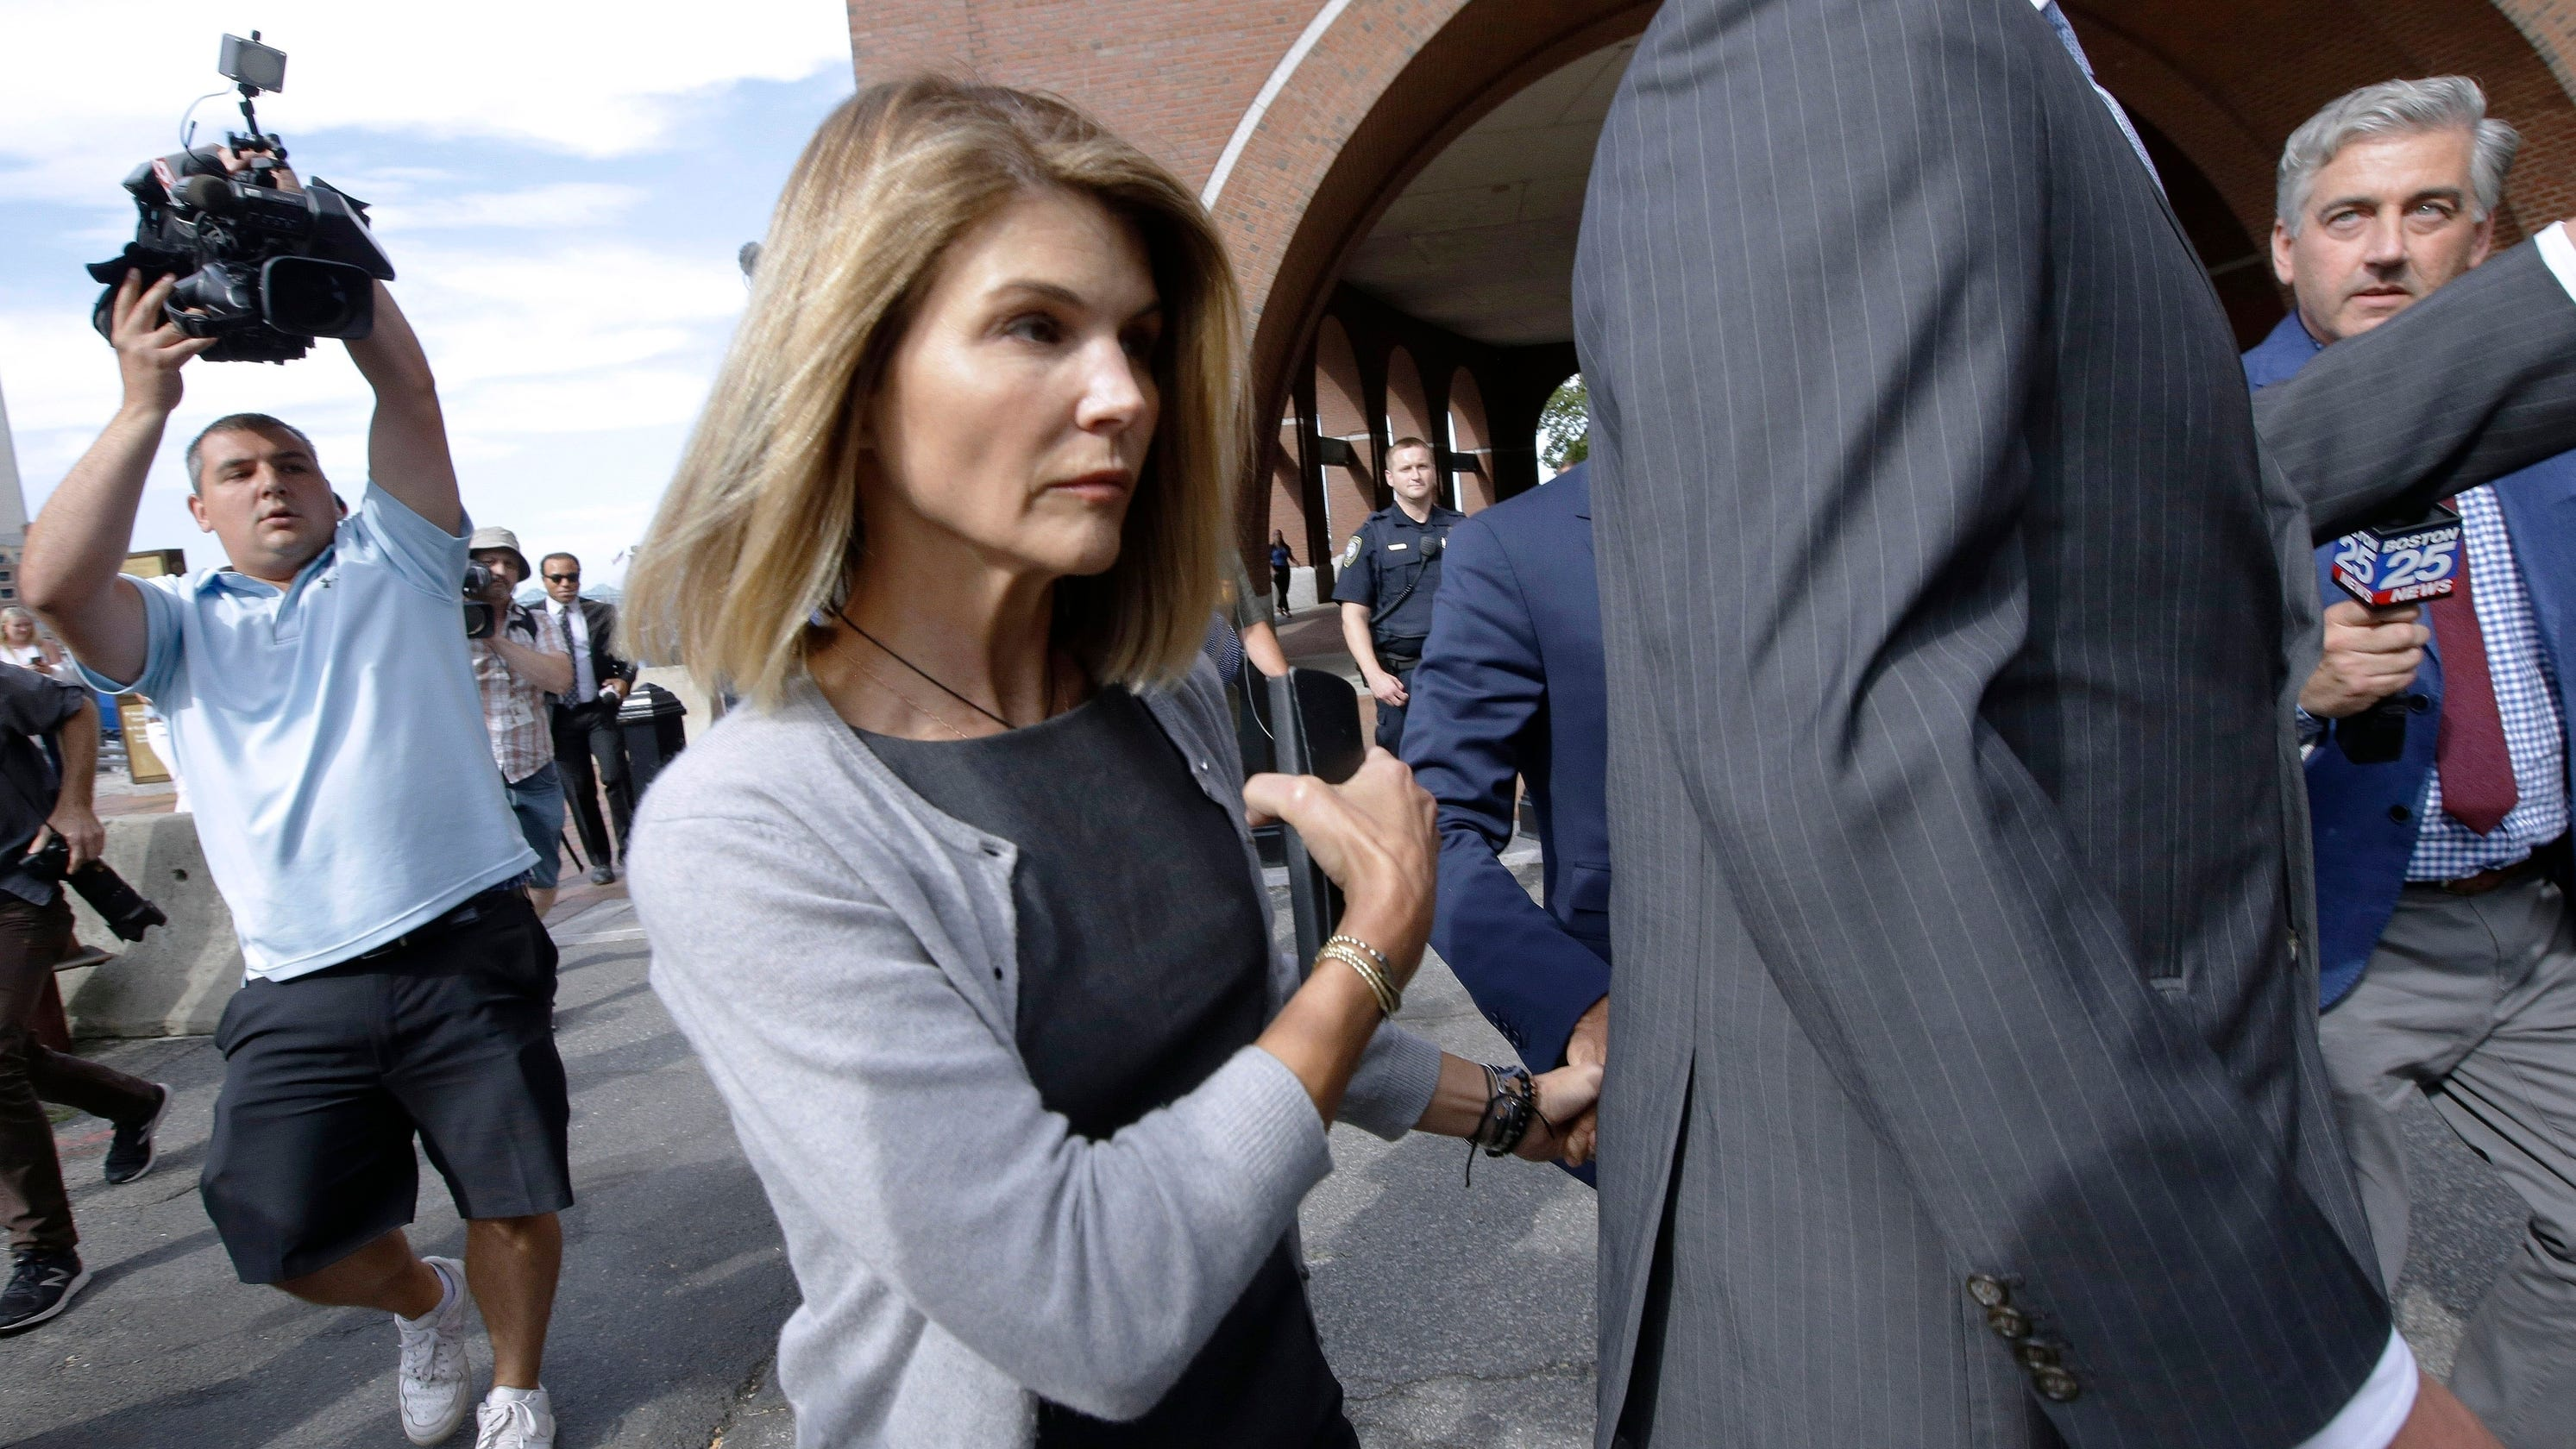 Lori Loughlin's attorneys say new evidence proves innocence in college admissions scandal